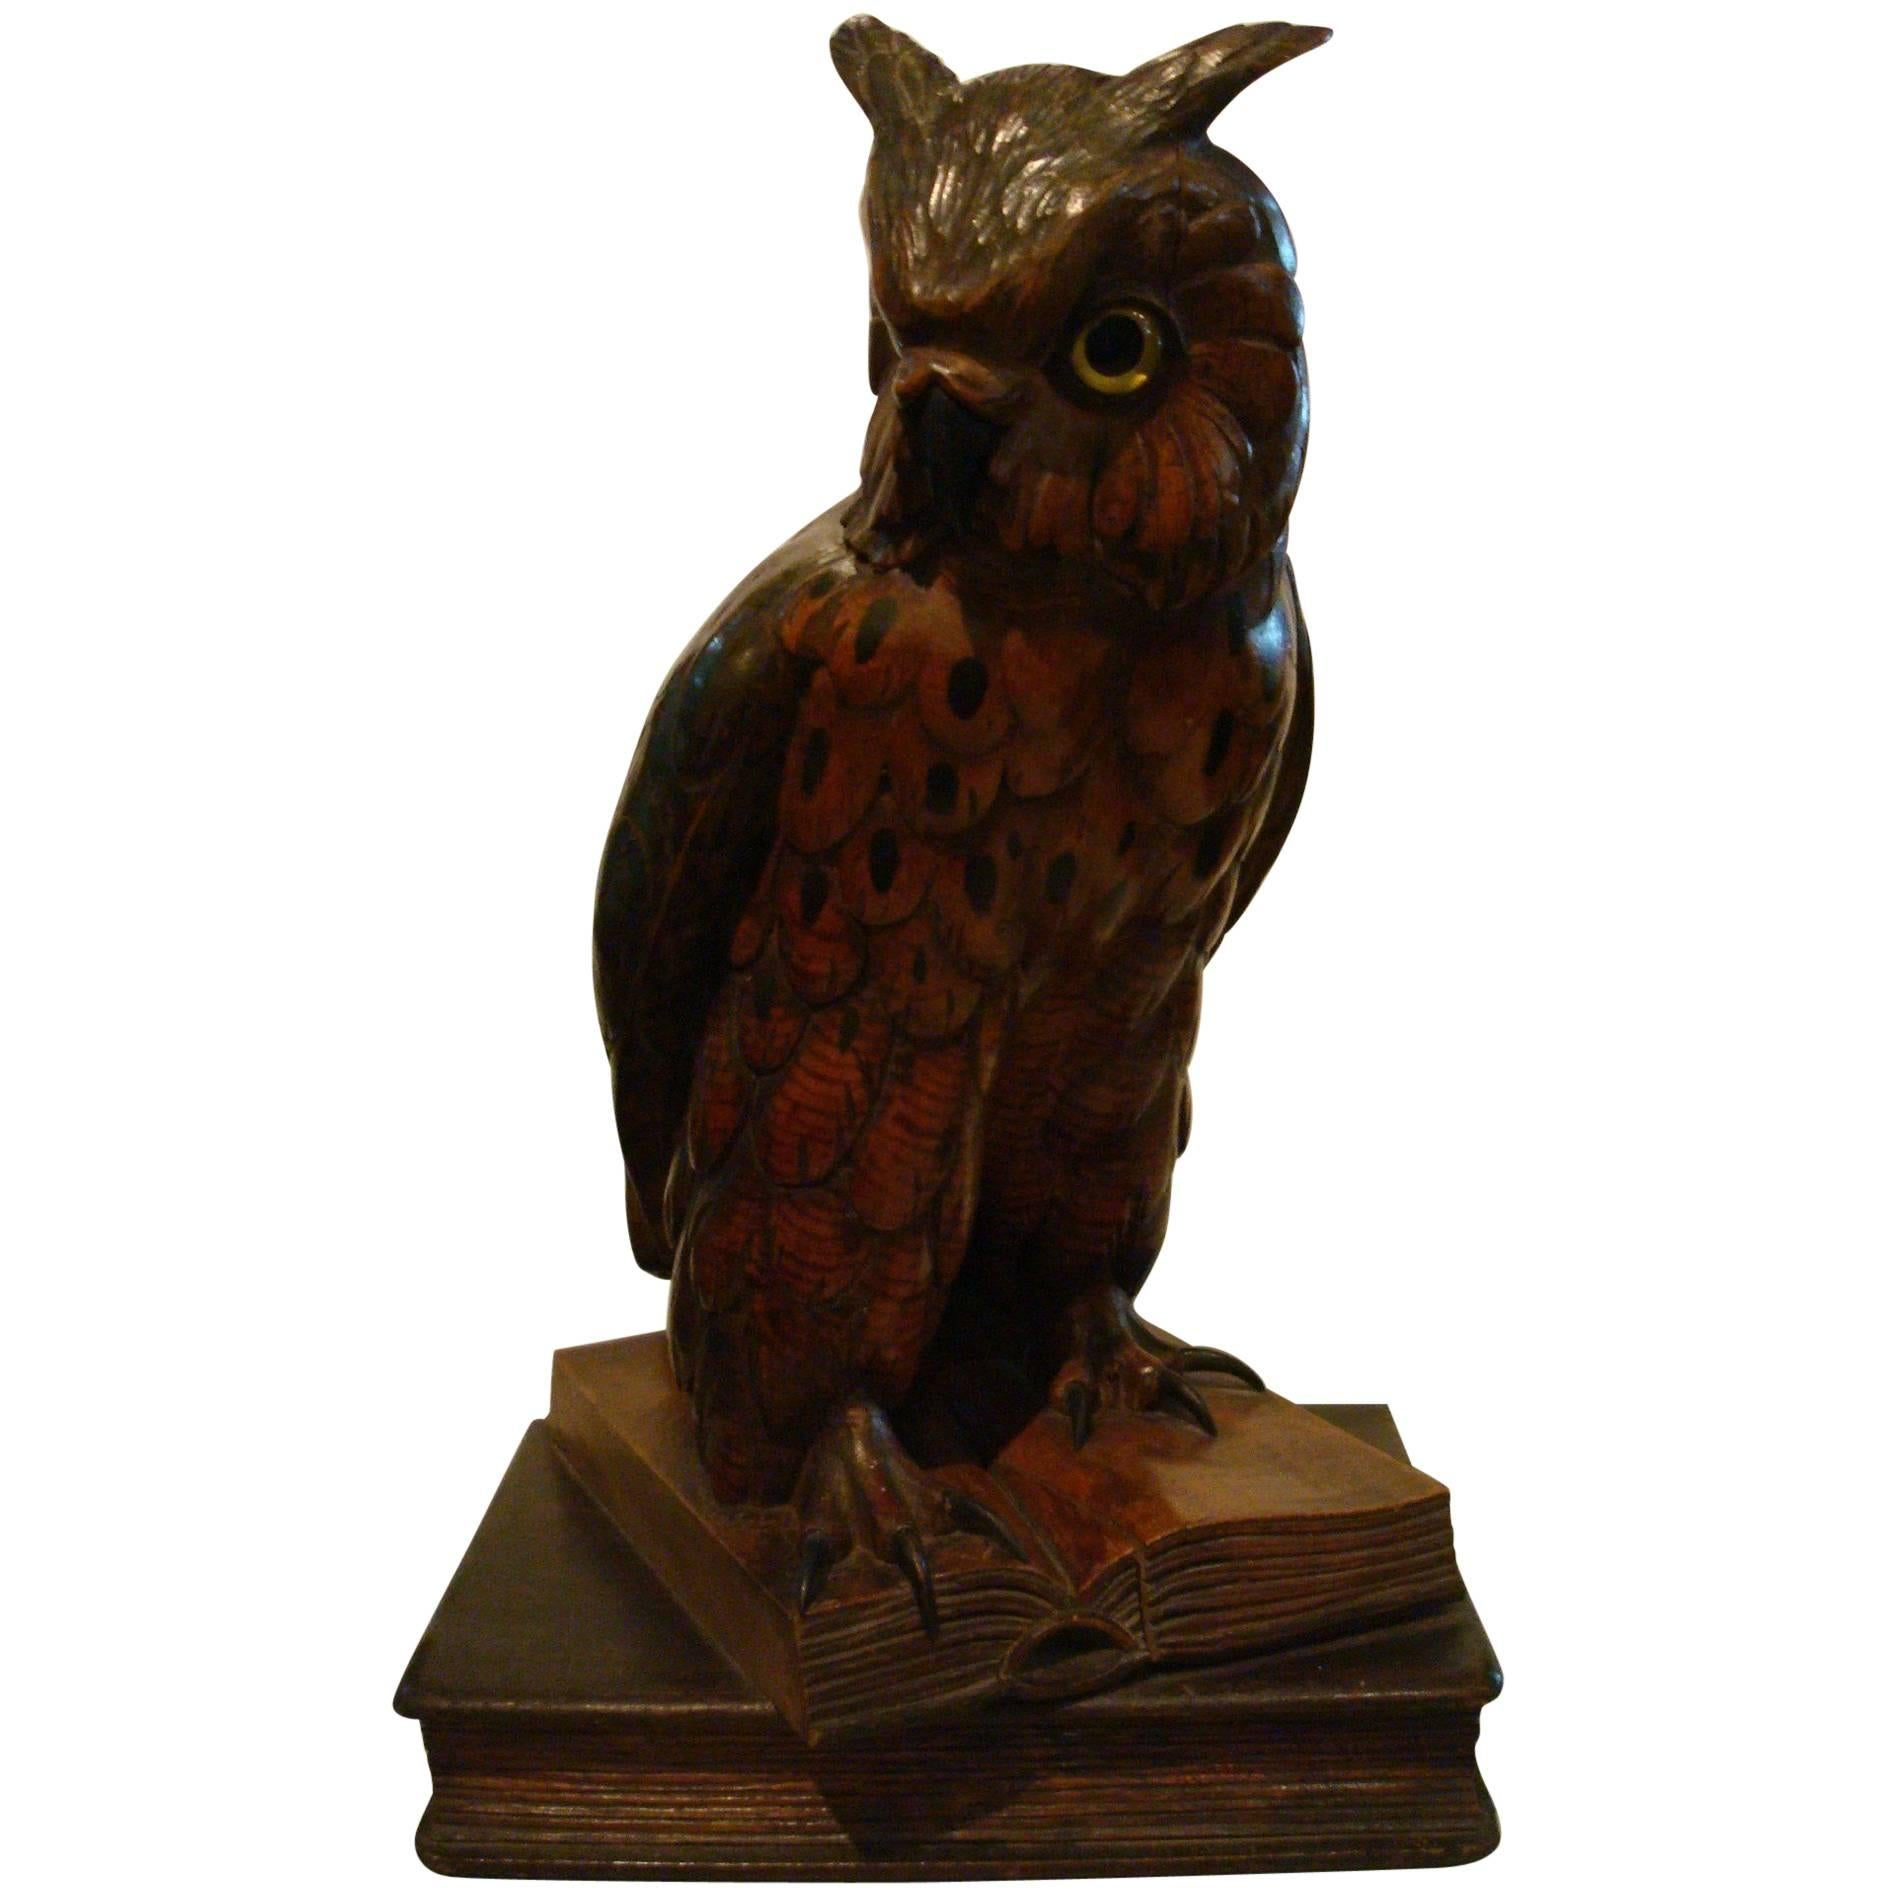 Wood carving ideas for a rustic home decor homesthetics